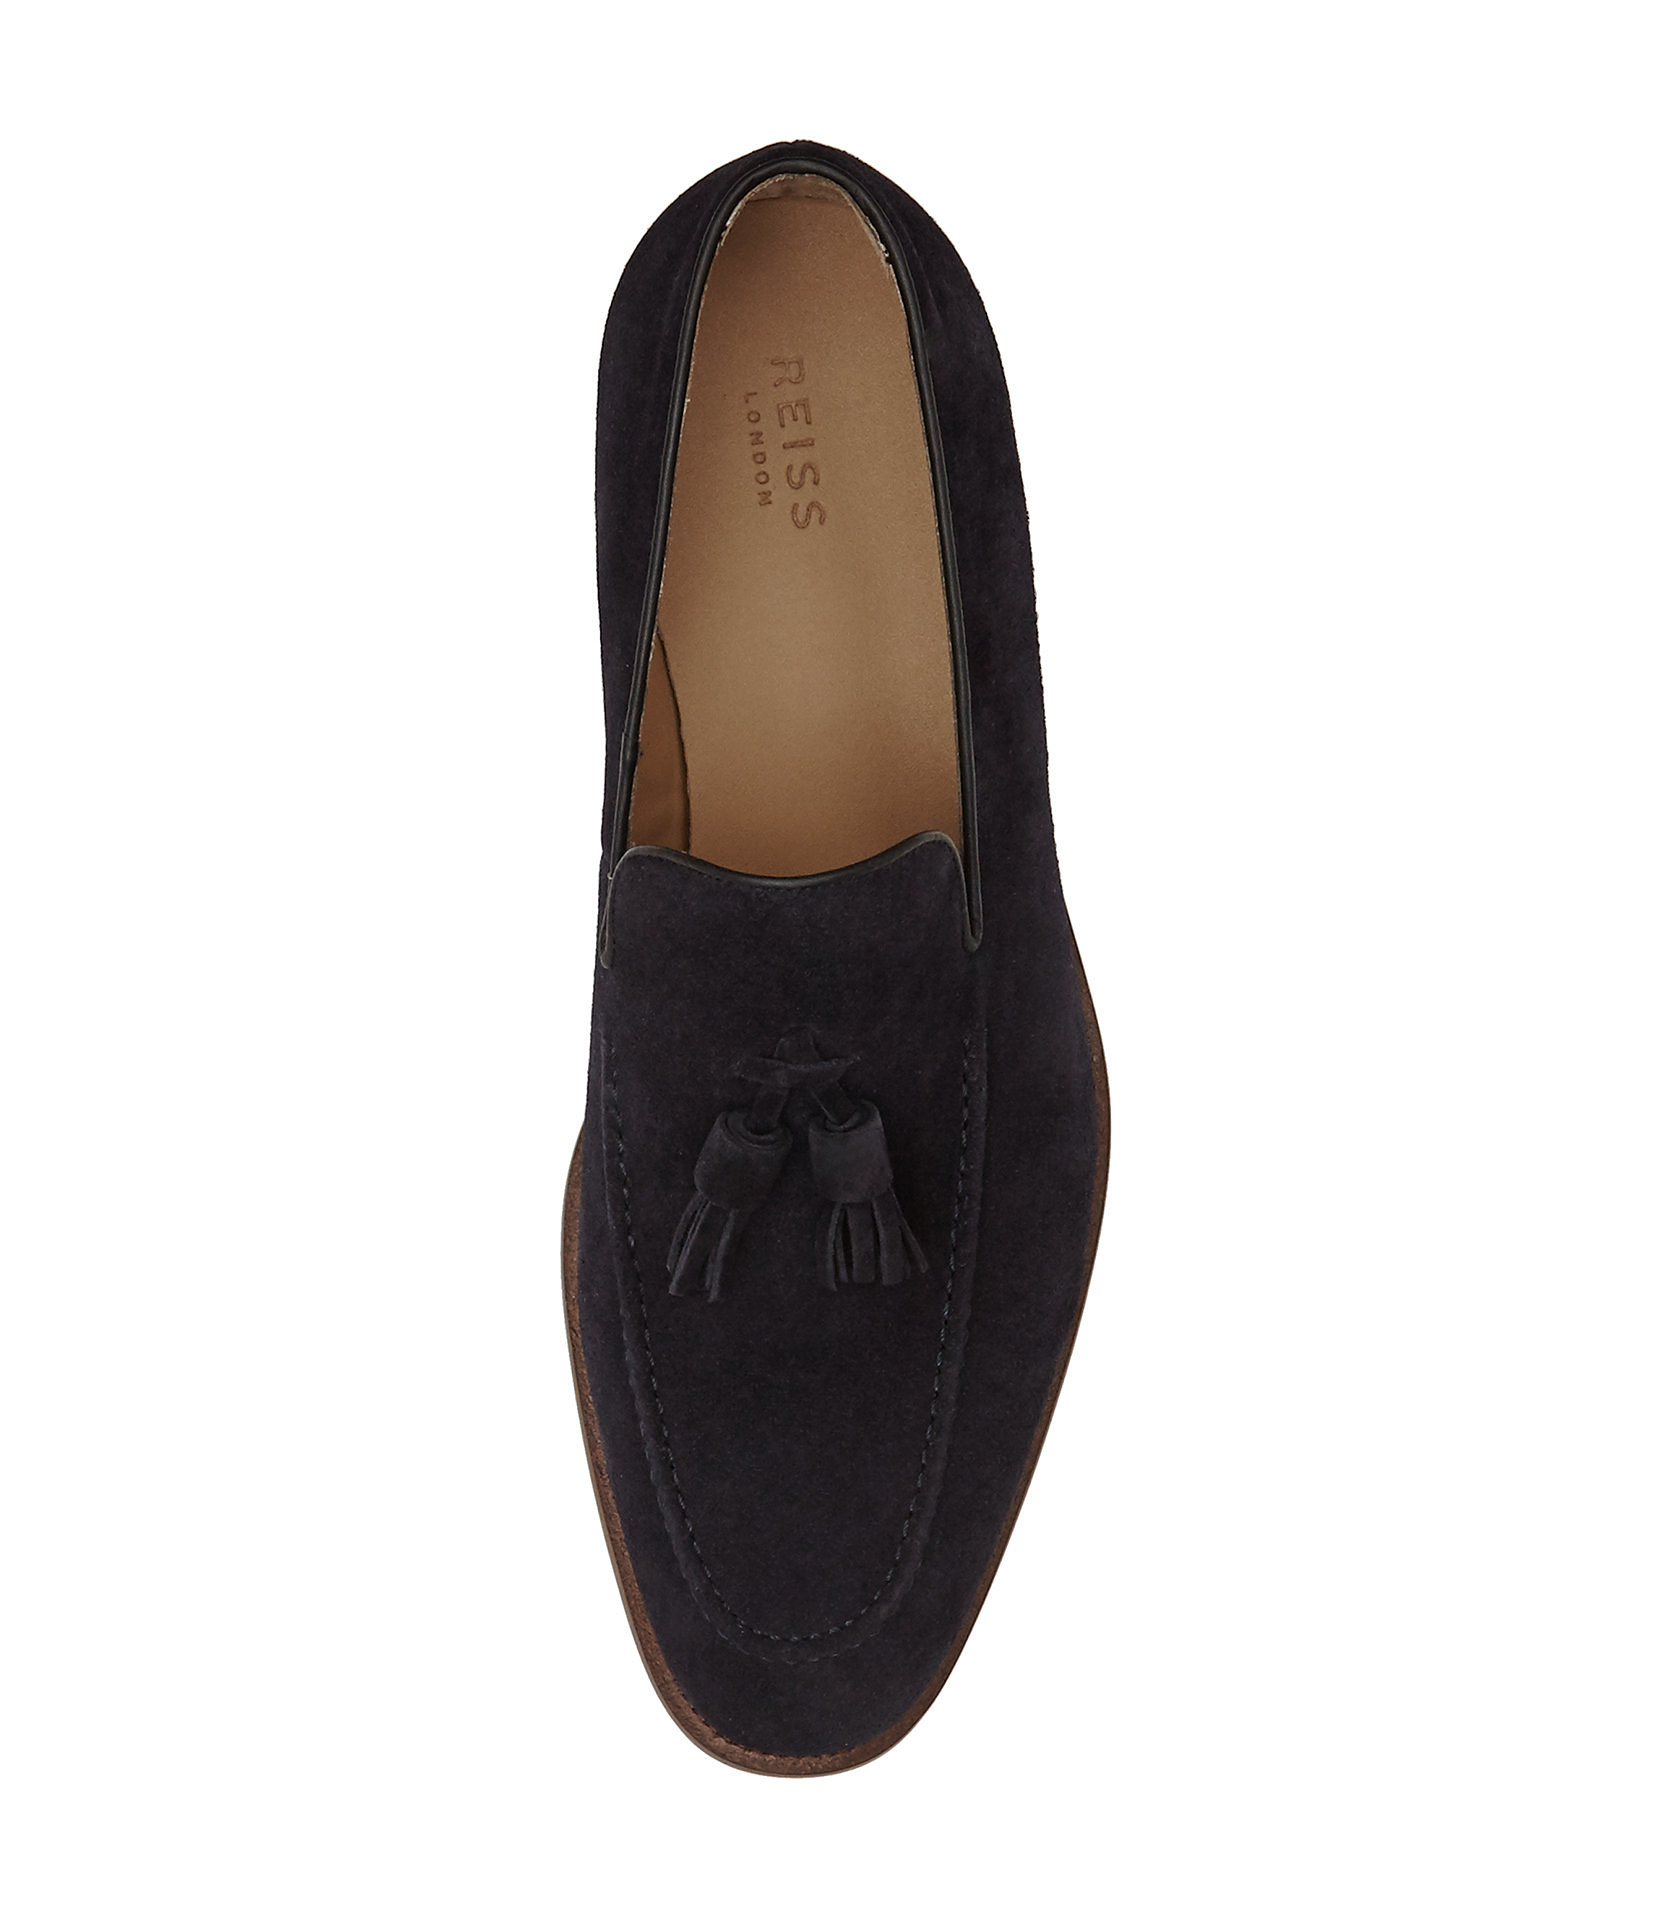 Reiss Suede Tassel Loafers